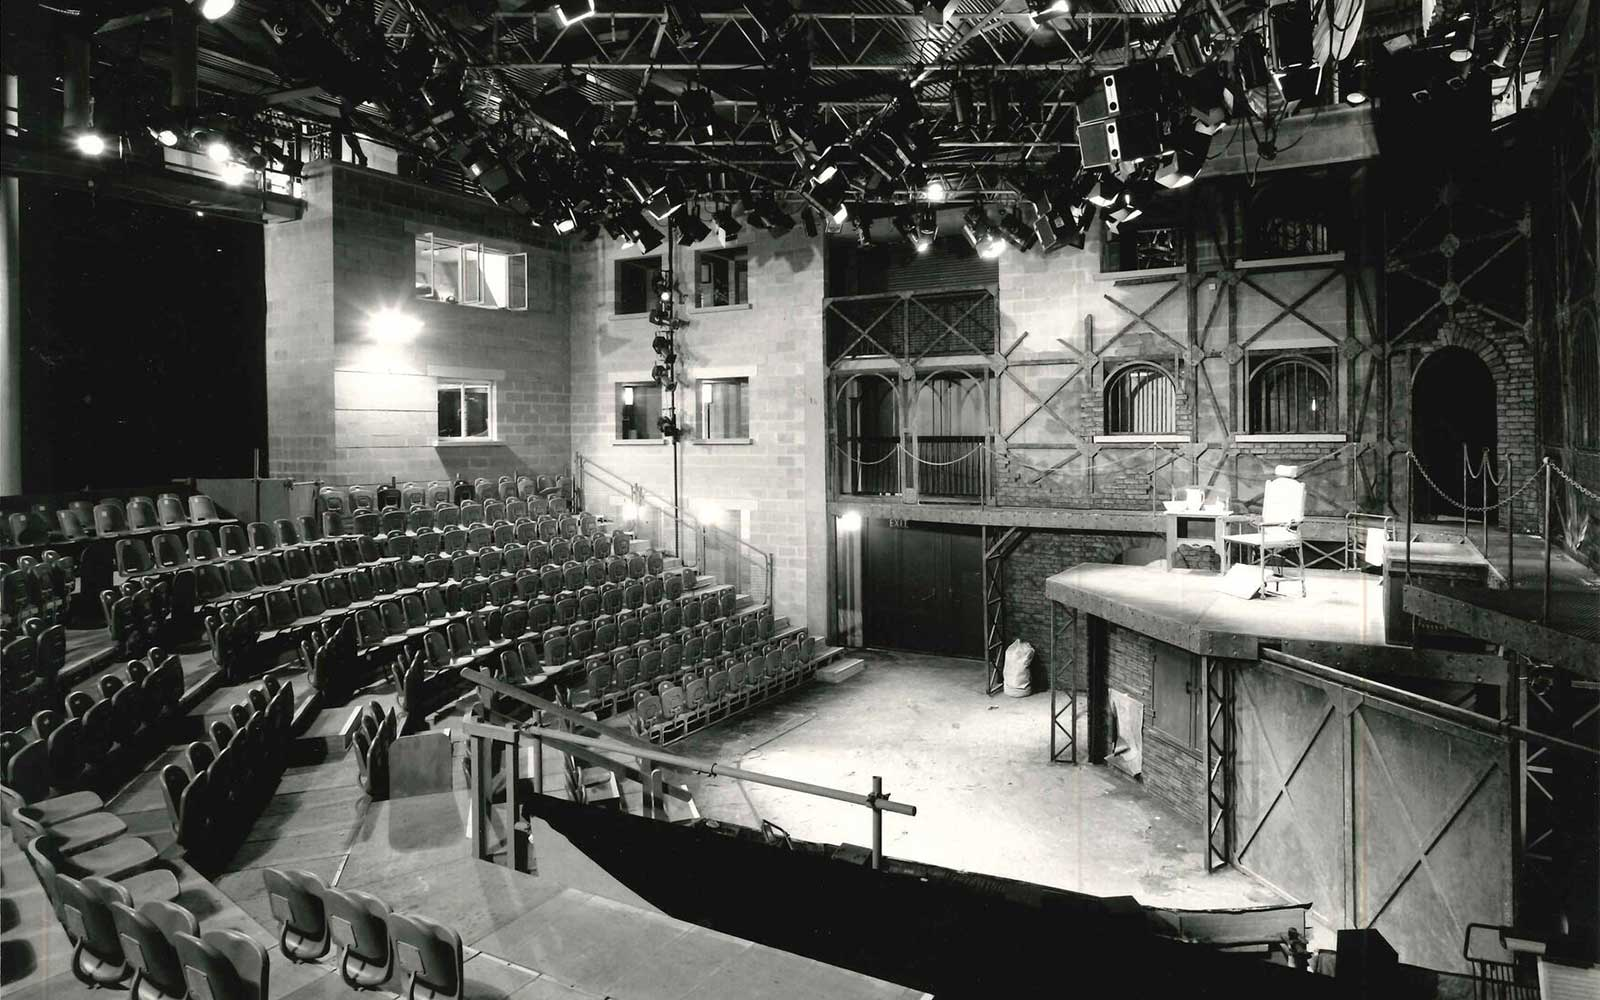 Buzzword wins the Half Moon Theatre's 'Stages of Half Moon' digital archive website project